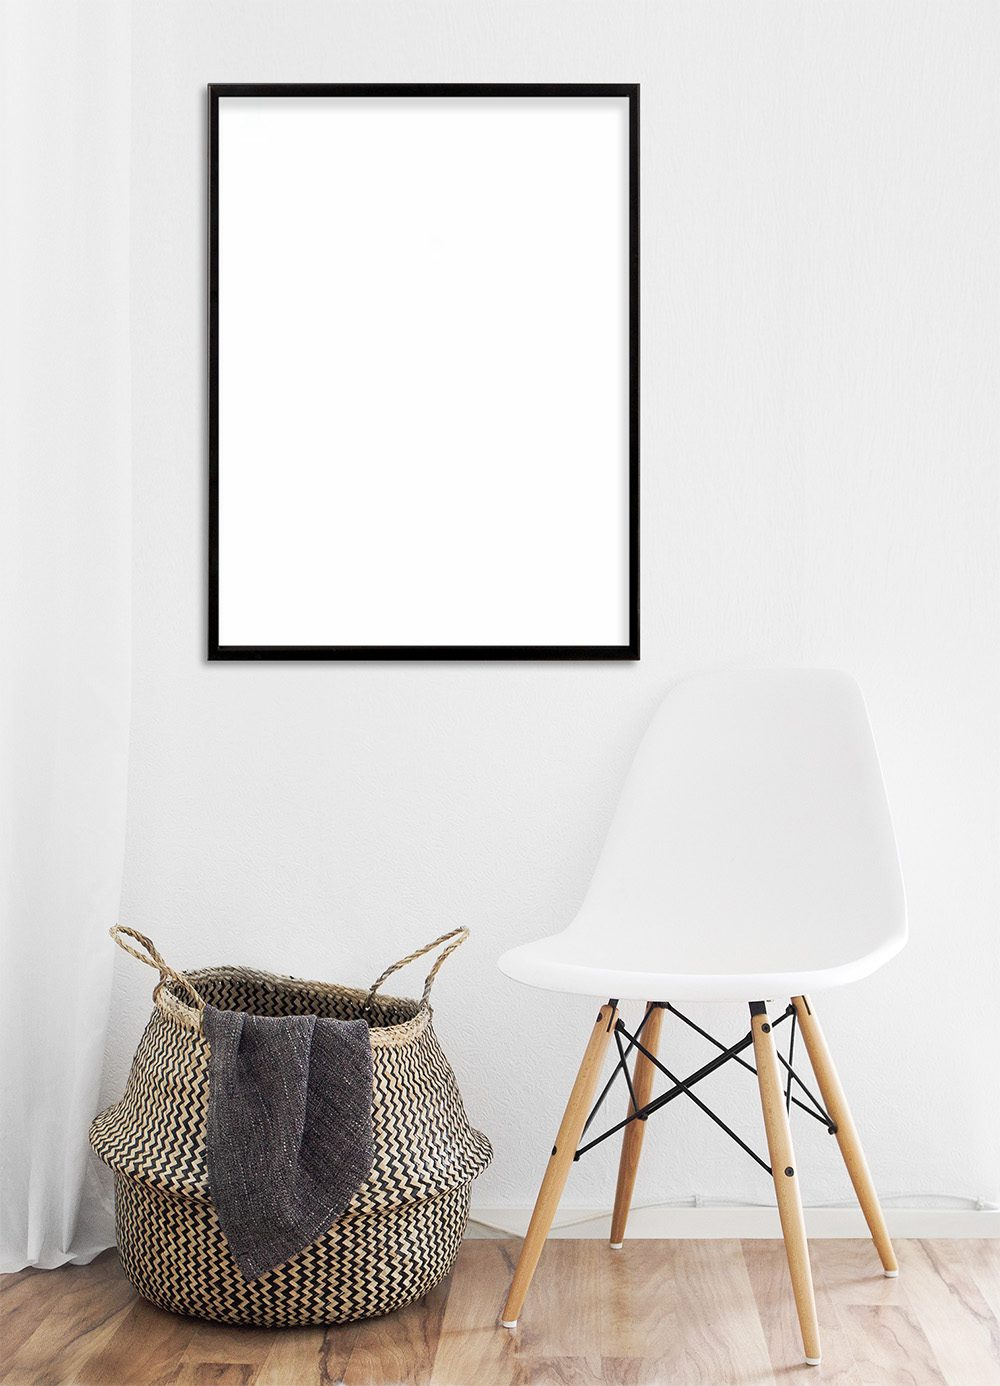 10-wall-picture-frame-mockup